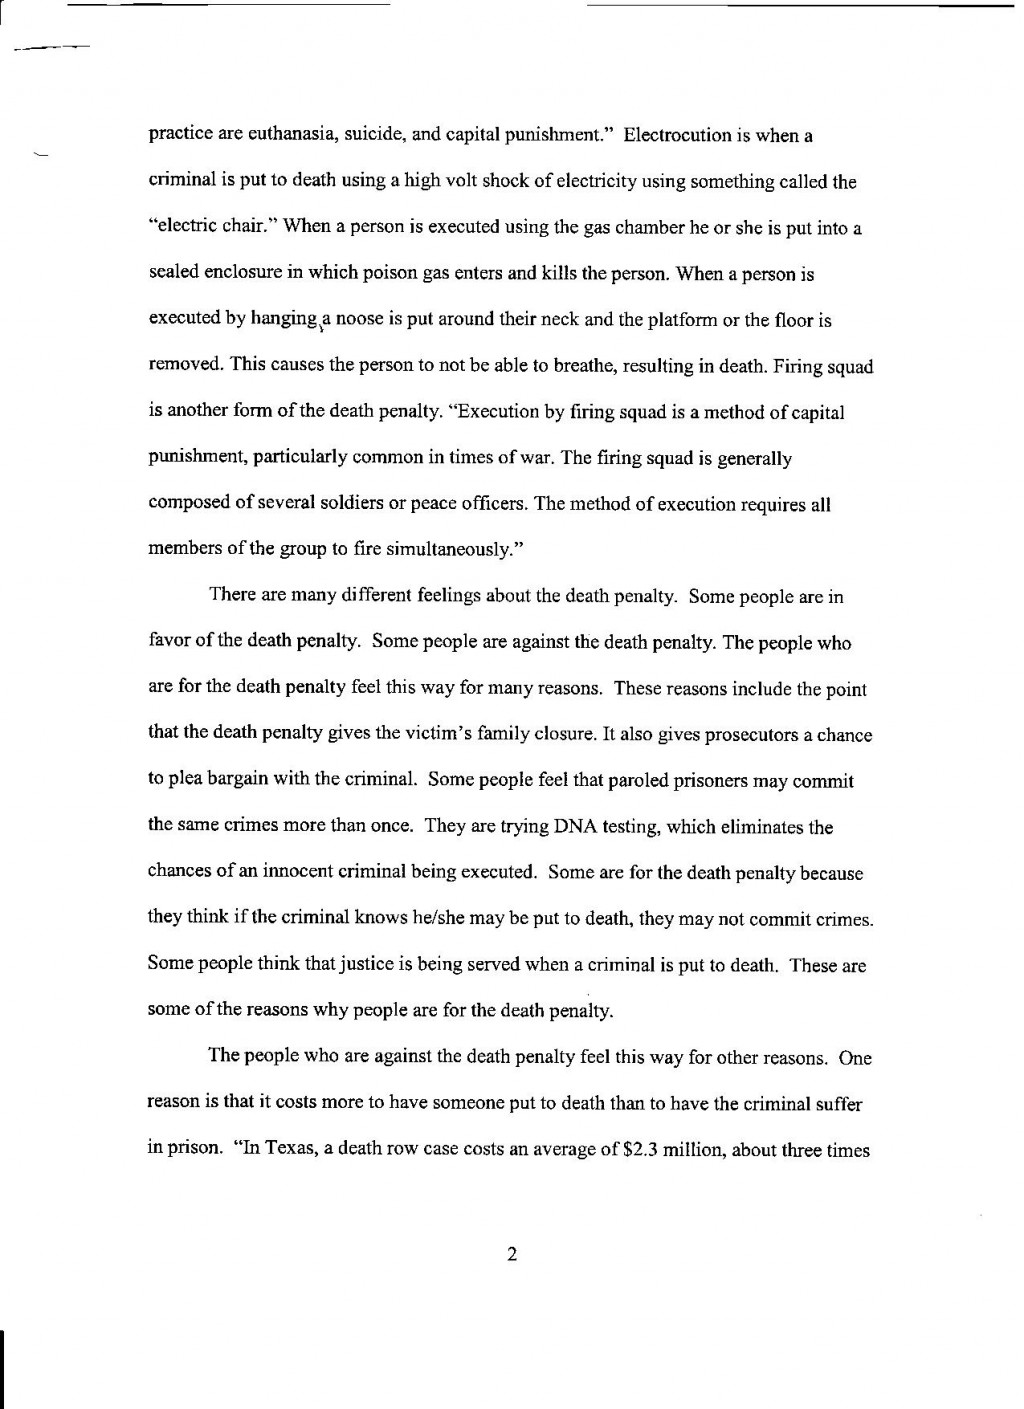 003 Against Death Penalty Essays Pg Essay Shocking Body Conclusion Anti Large